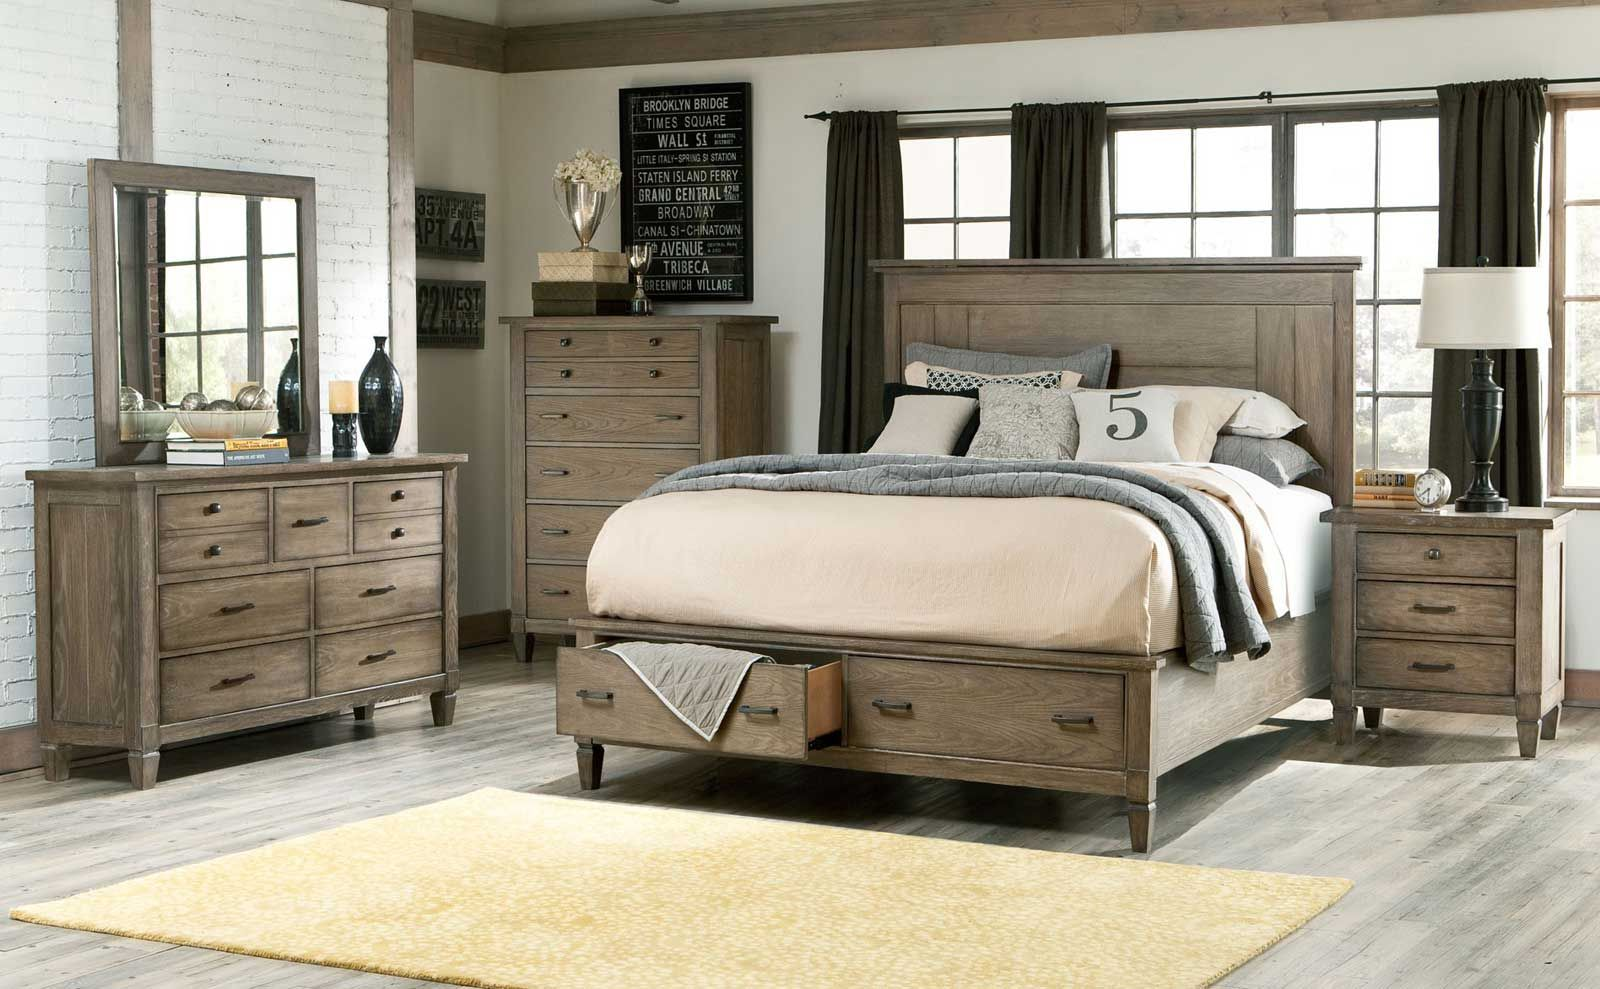 Image Result For Wood King Size Bedroom Sets Rustic